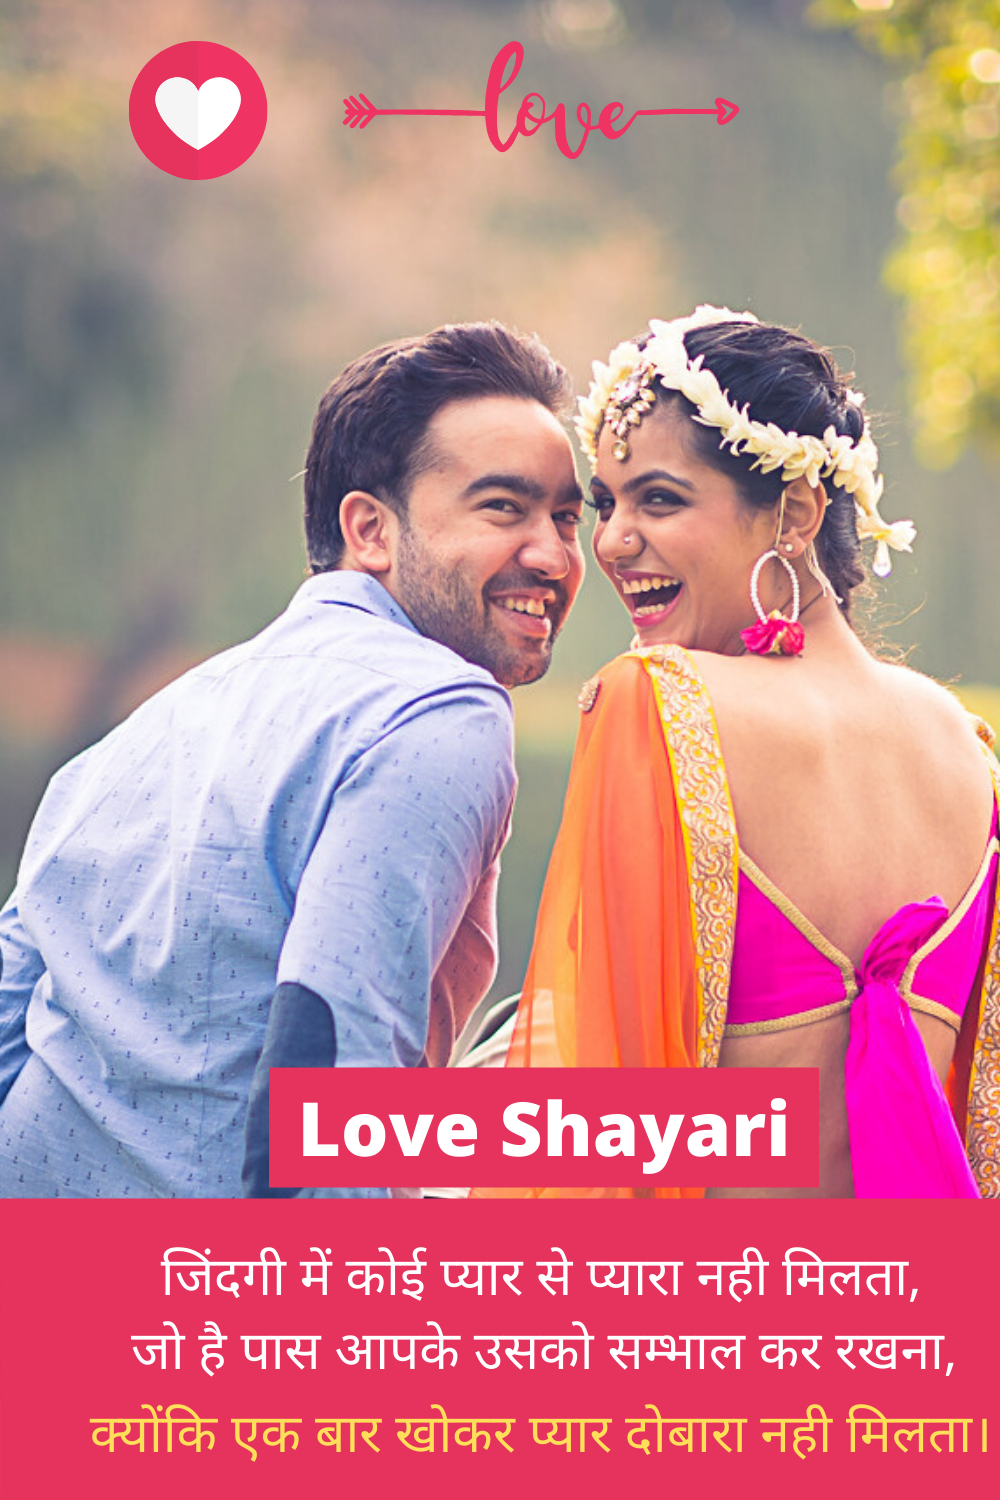 Read Latest Hindi Love Shayari 2020, Hindi Love SMS, Hindi Romantic Shayari, Hindi Love Status, Love quotes